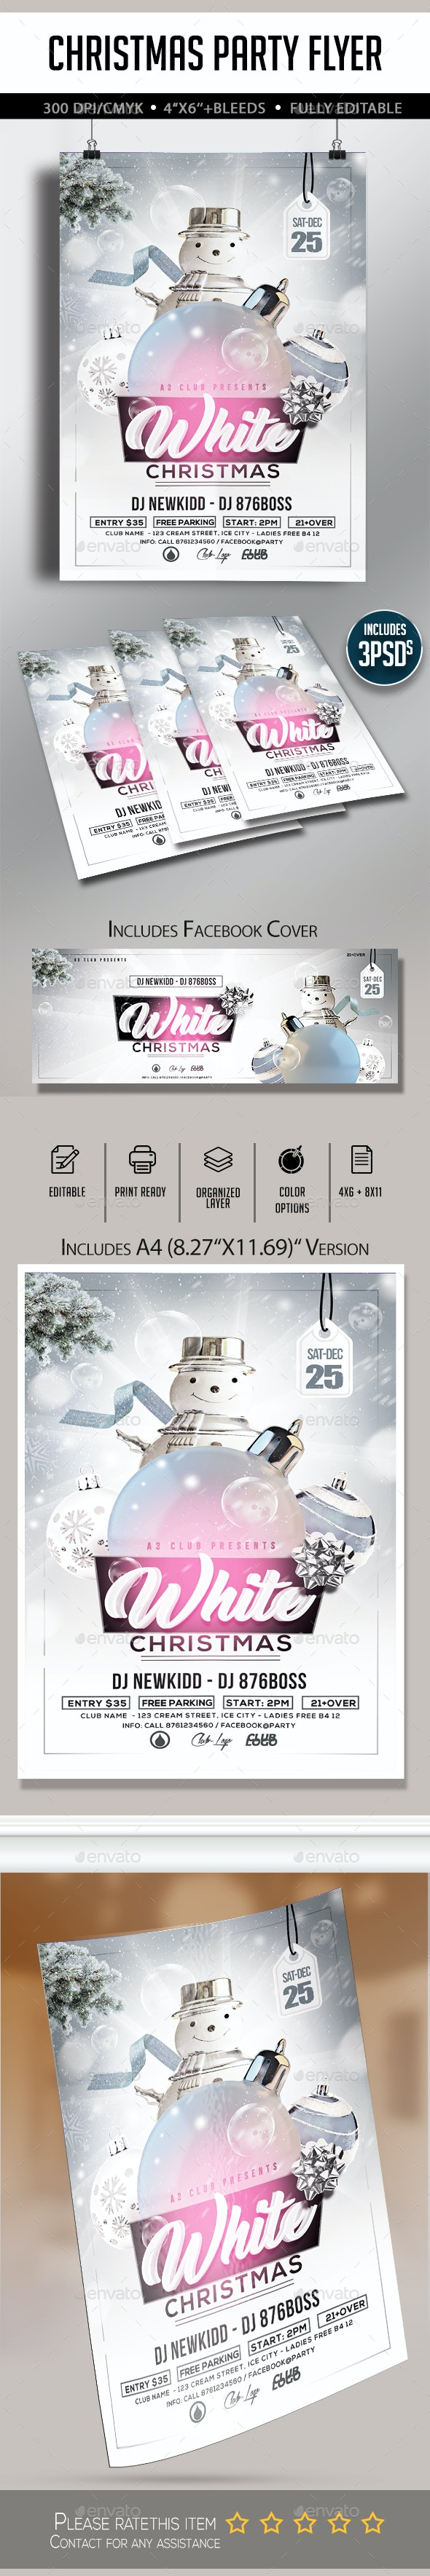 All White Christmas Flyer - Clubs & Parties Events